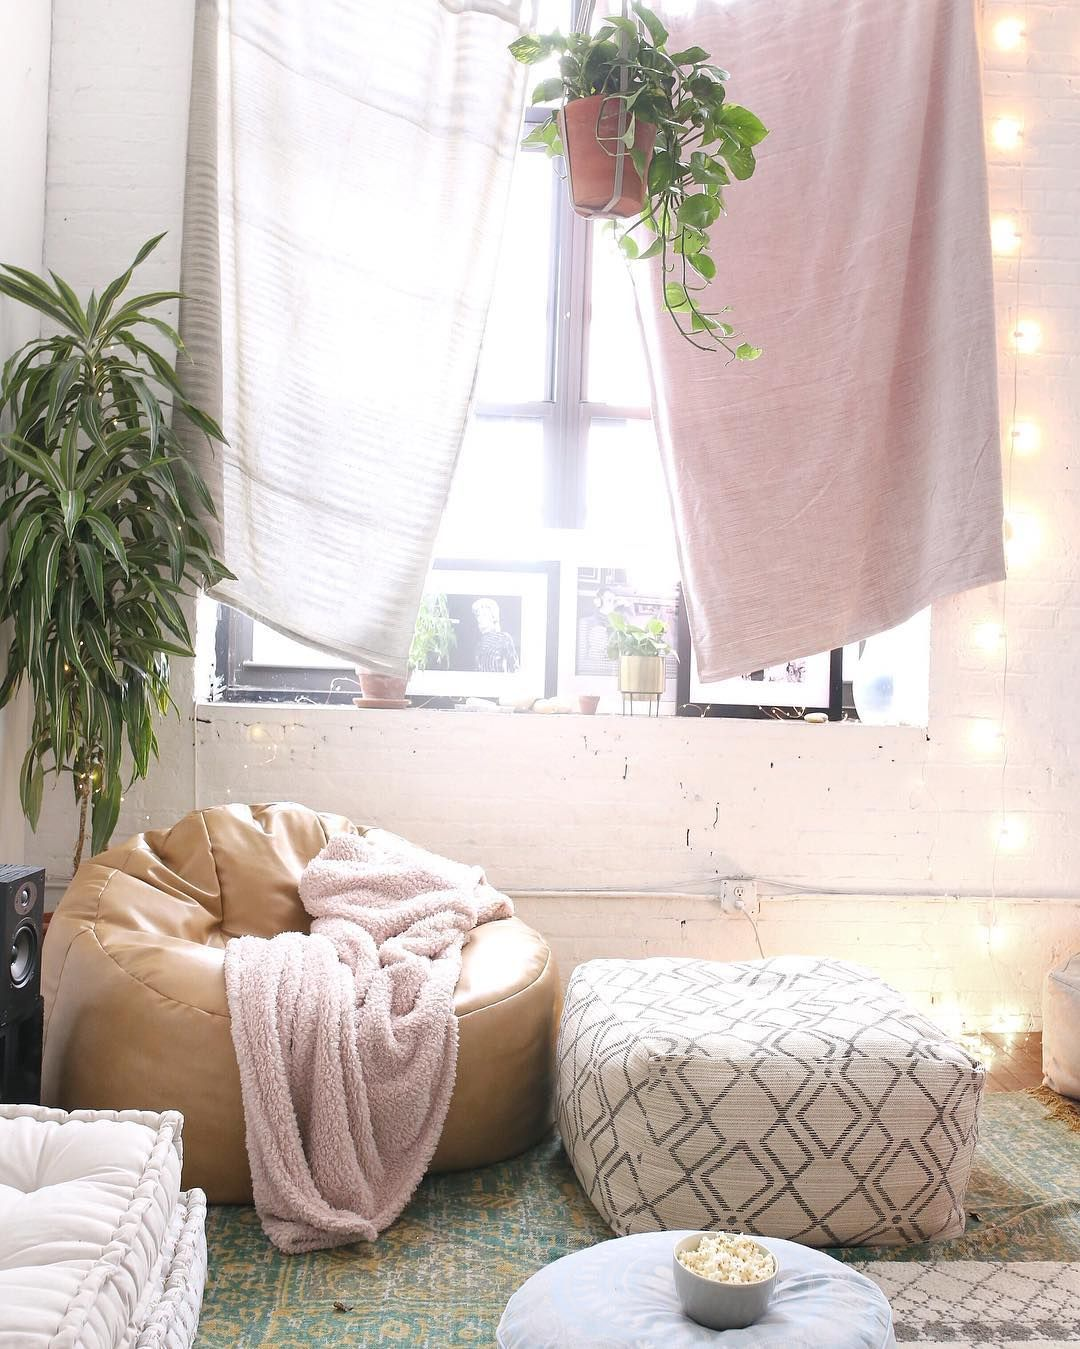 bohemian bedroom :: beach boho chic :: home decor + design :: free your wild :: see more bedroom